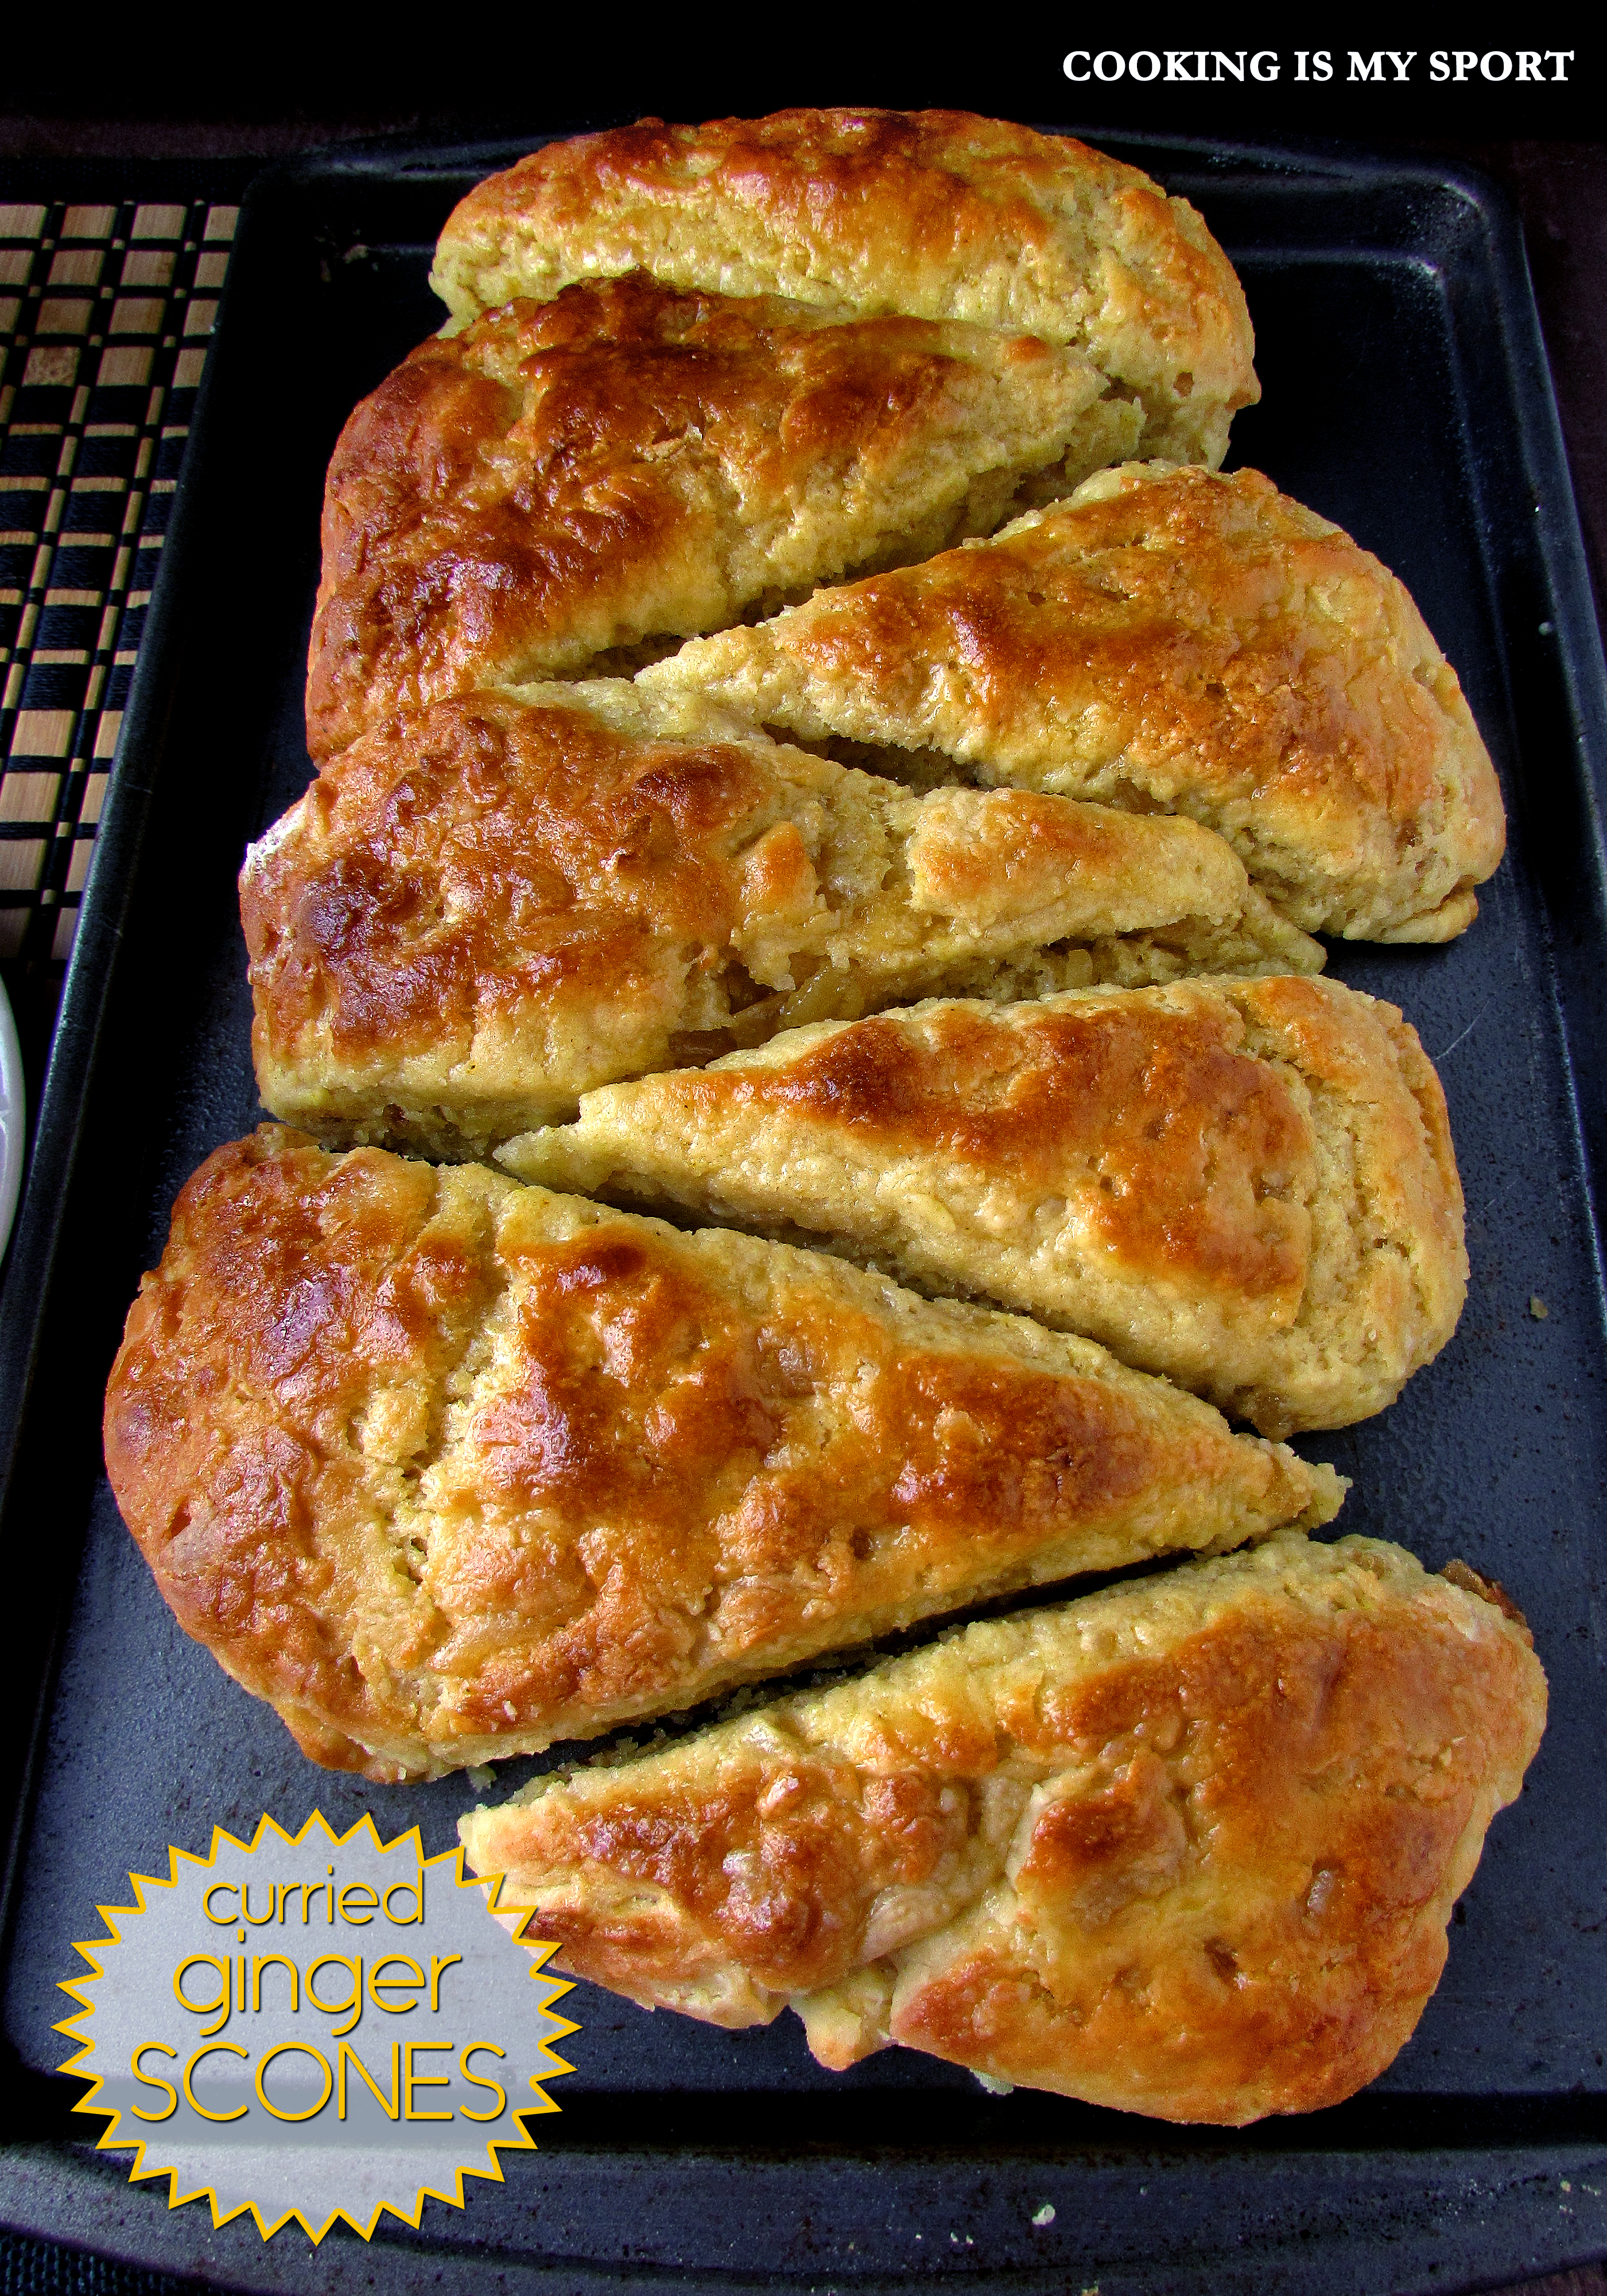 Curried Ginger Scones1